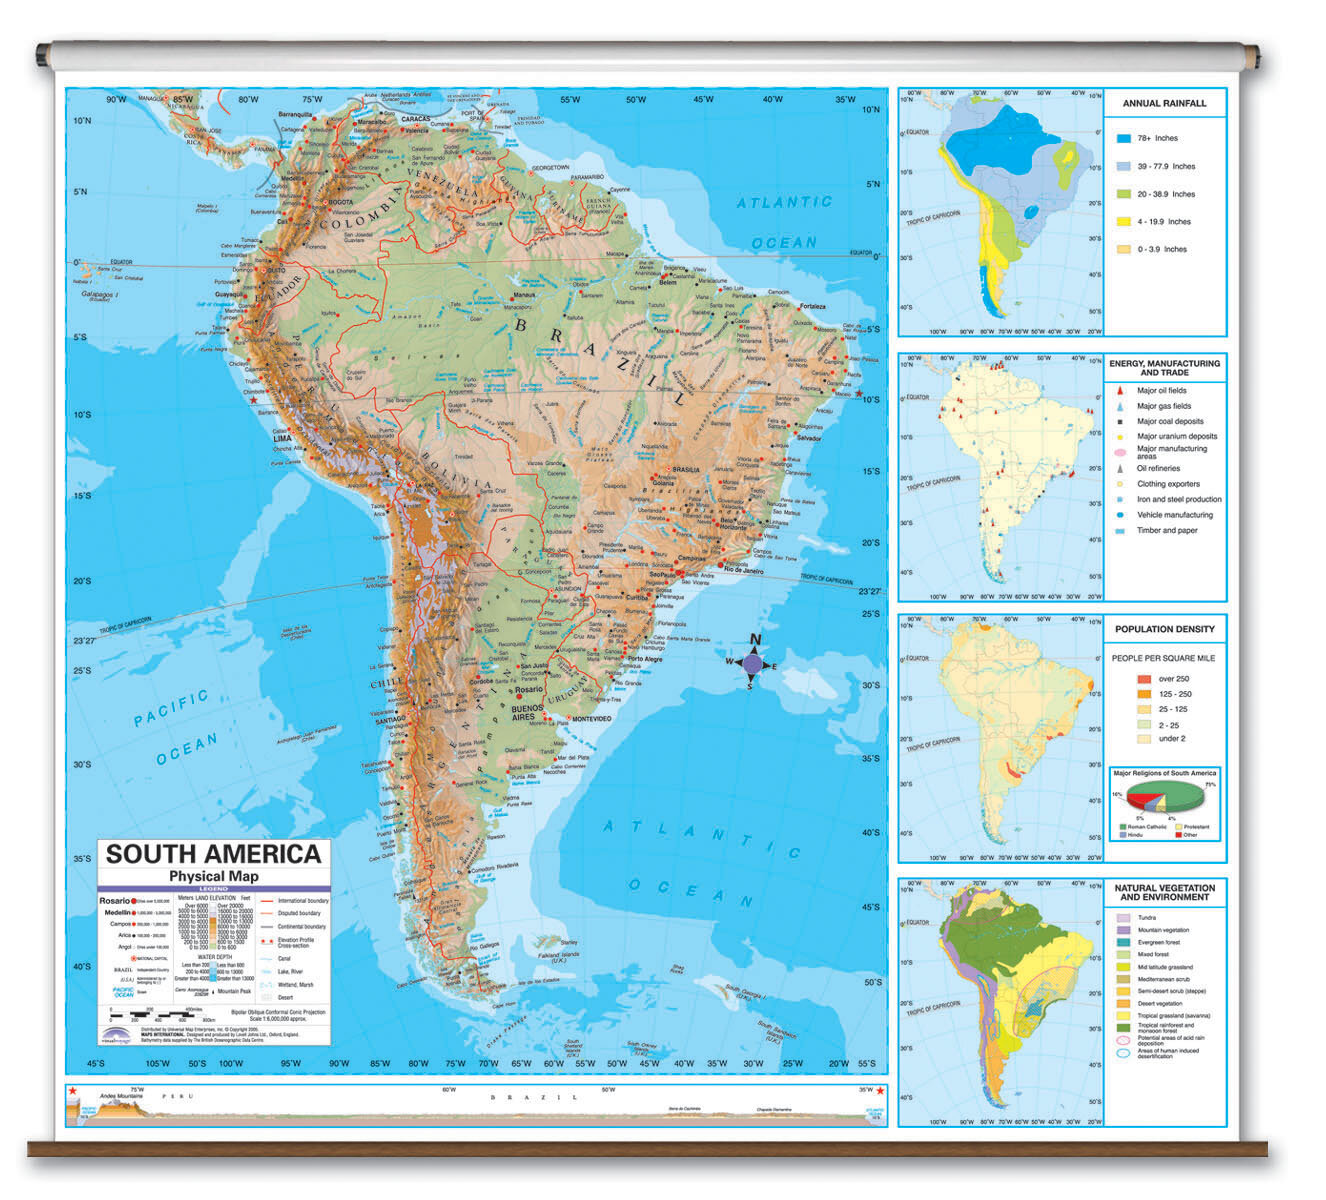 Advanced Physical Map - South America